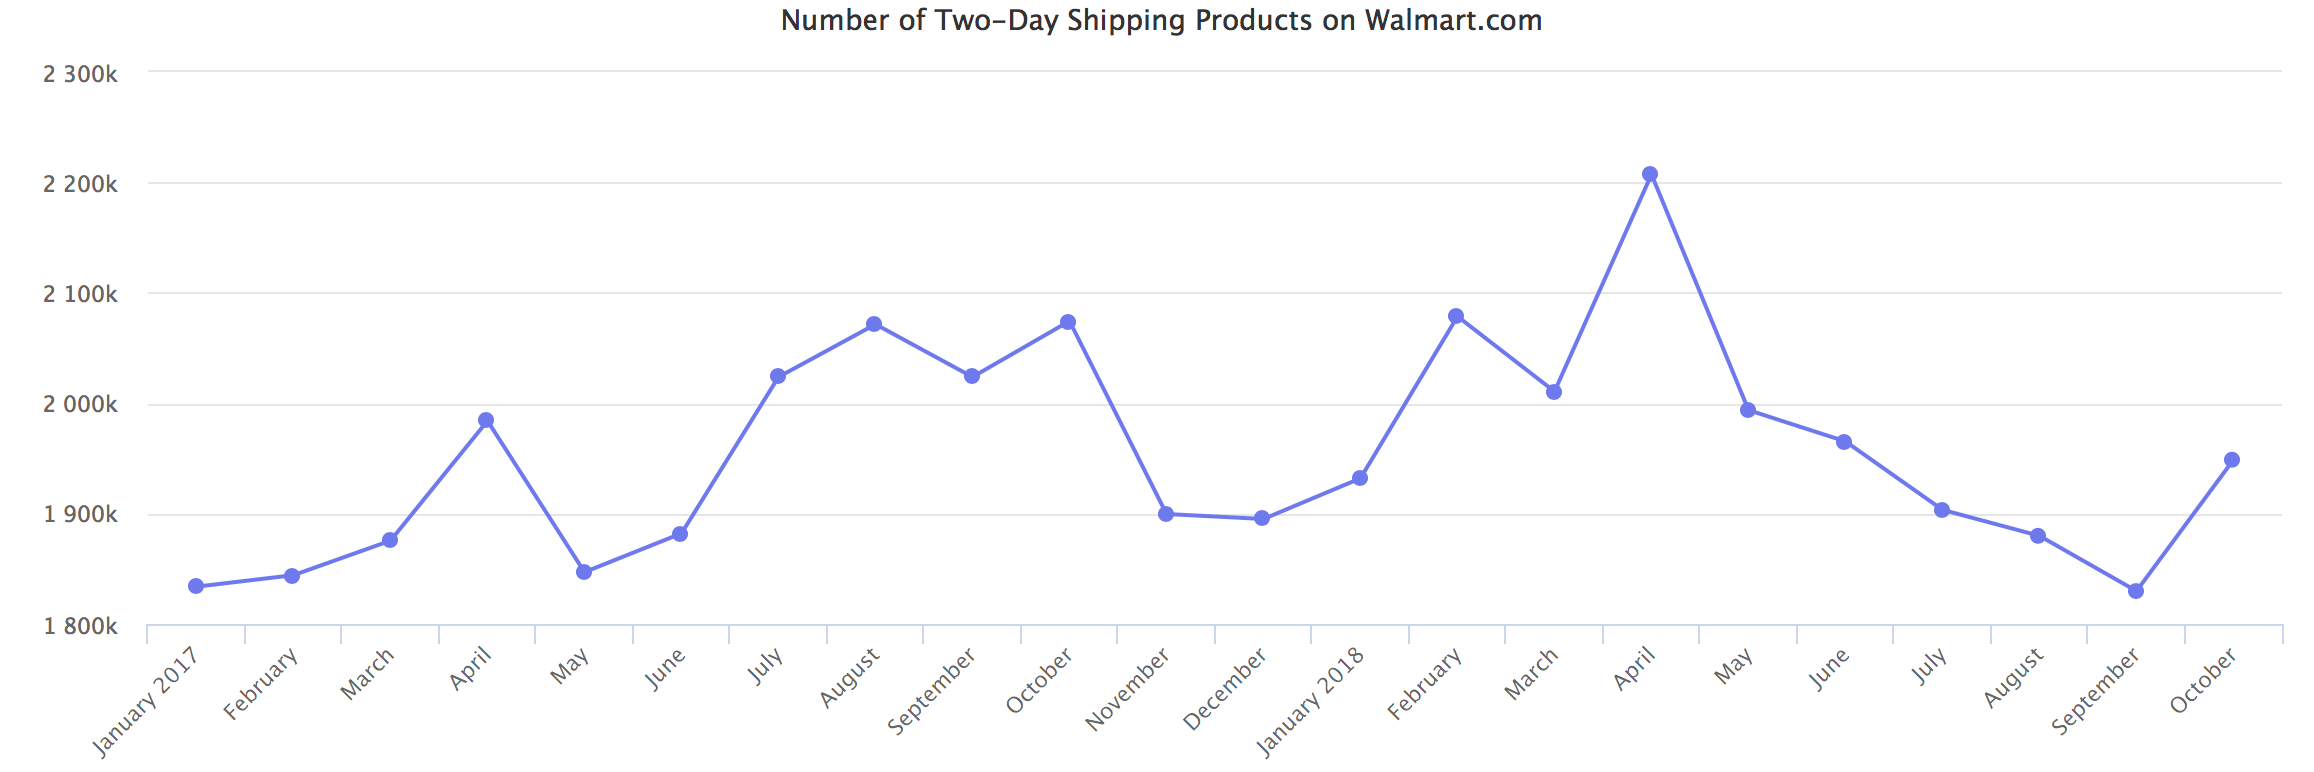 Walmart Number of Two Day Shipping Products